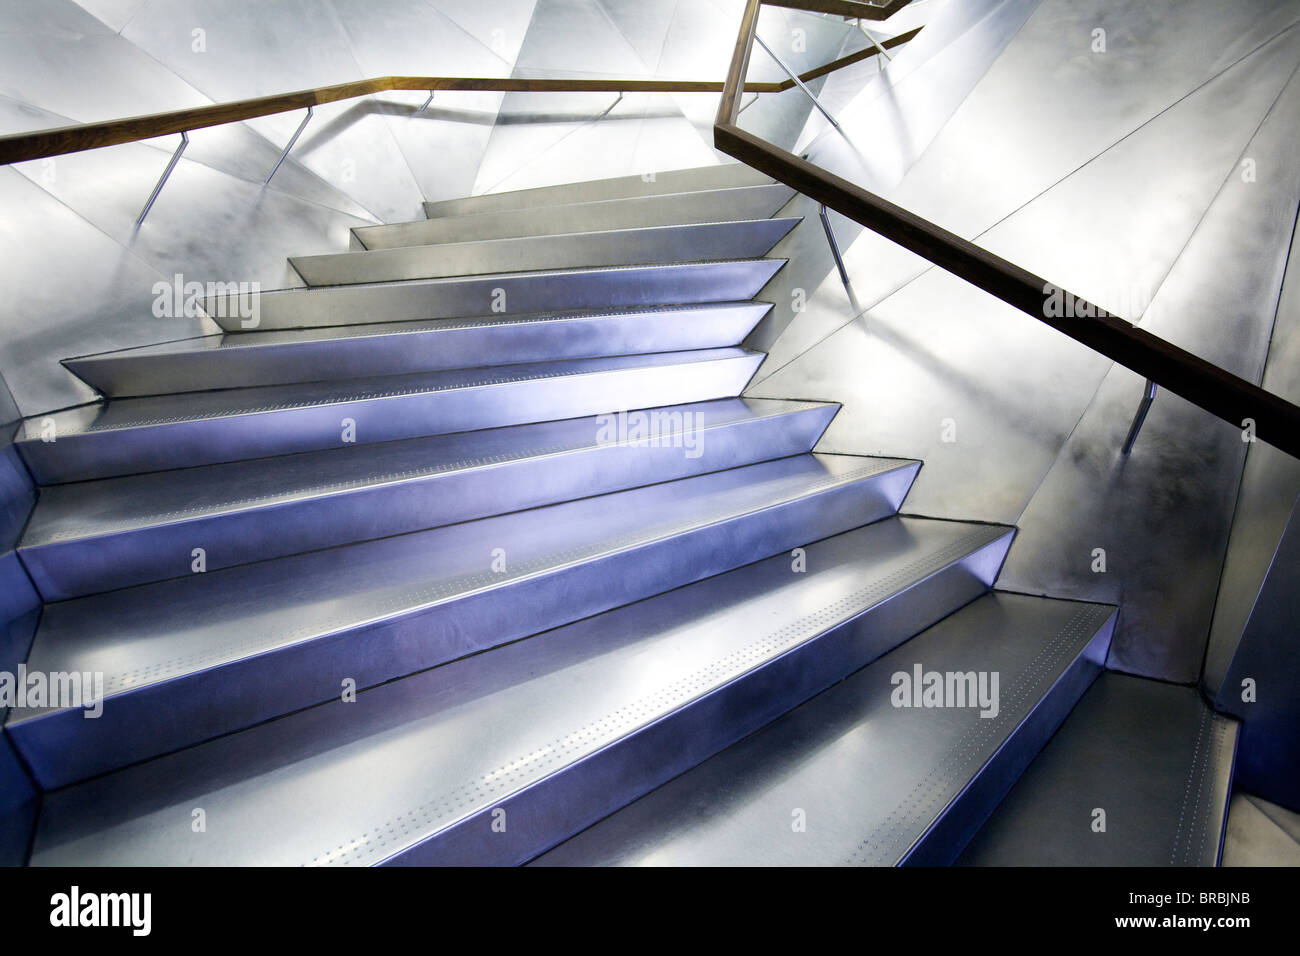 Flight of stairs in CaixaForum, Madrit, Spain - Stock Image